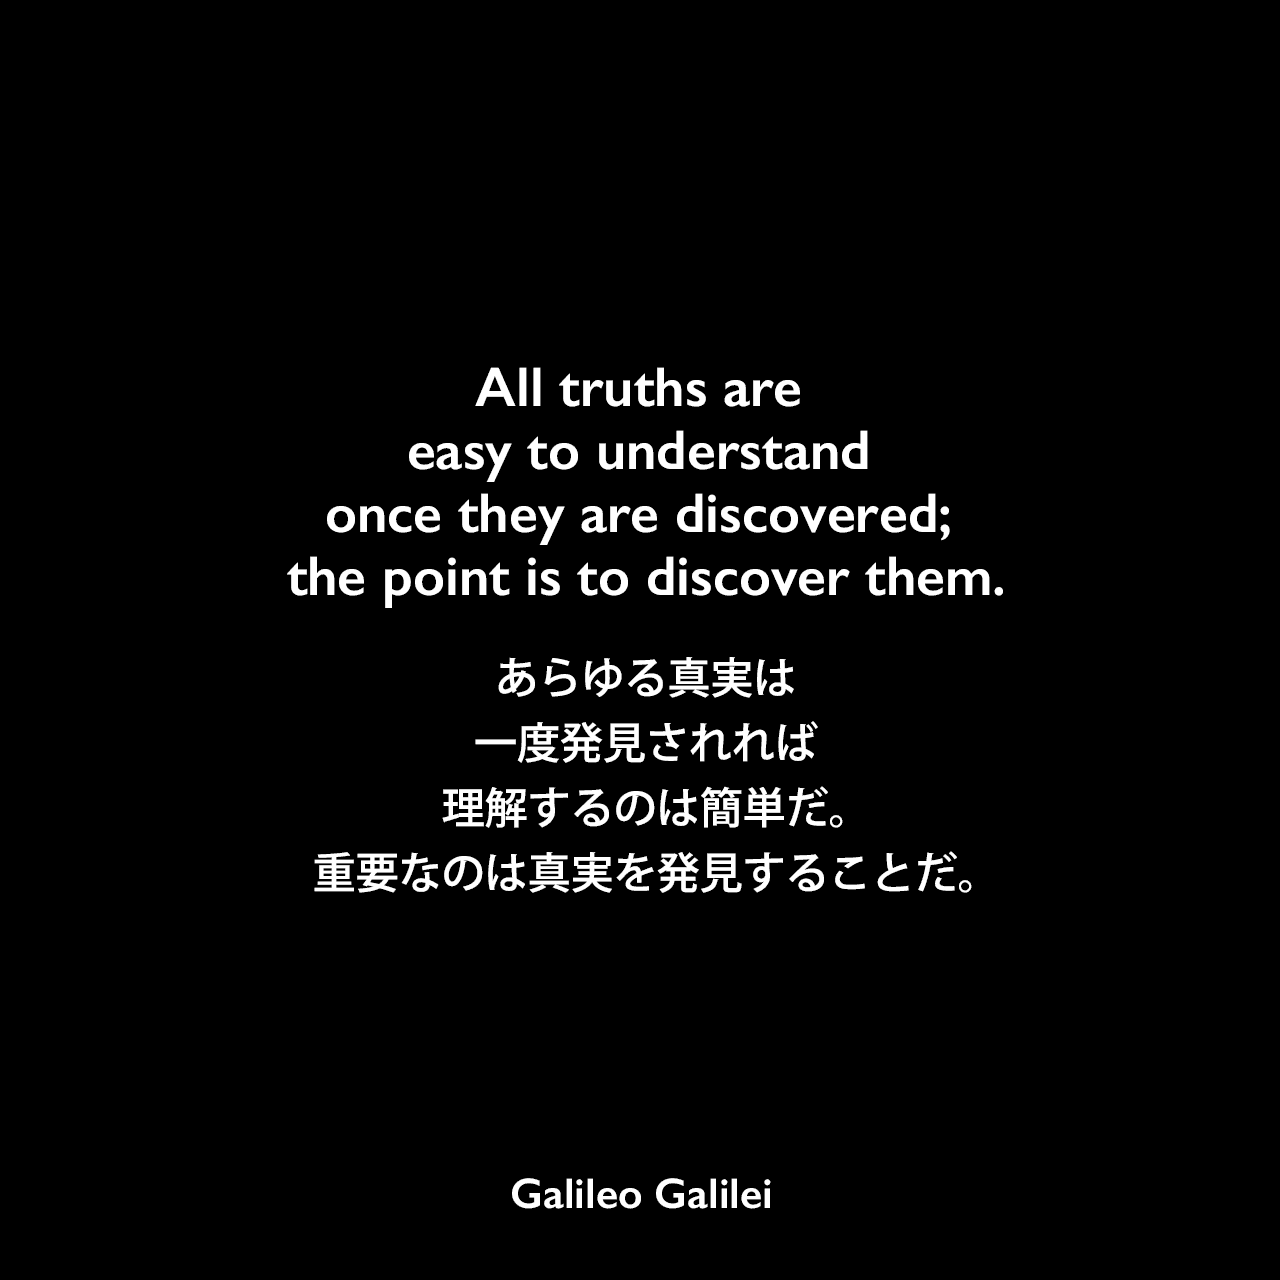 All truths are easy to understand once they are discovered; the point is to discover them.あらゆる真実は一度発見されれば理解するのは簡単だ。重要なのは真実を発見することだ。- メリッサ・ジョバニョーリの本「Angels in the Workplace」よりGalileo Galilei